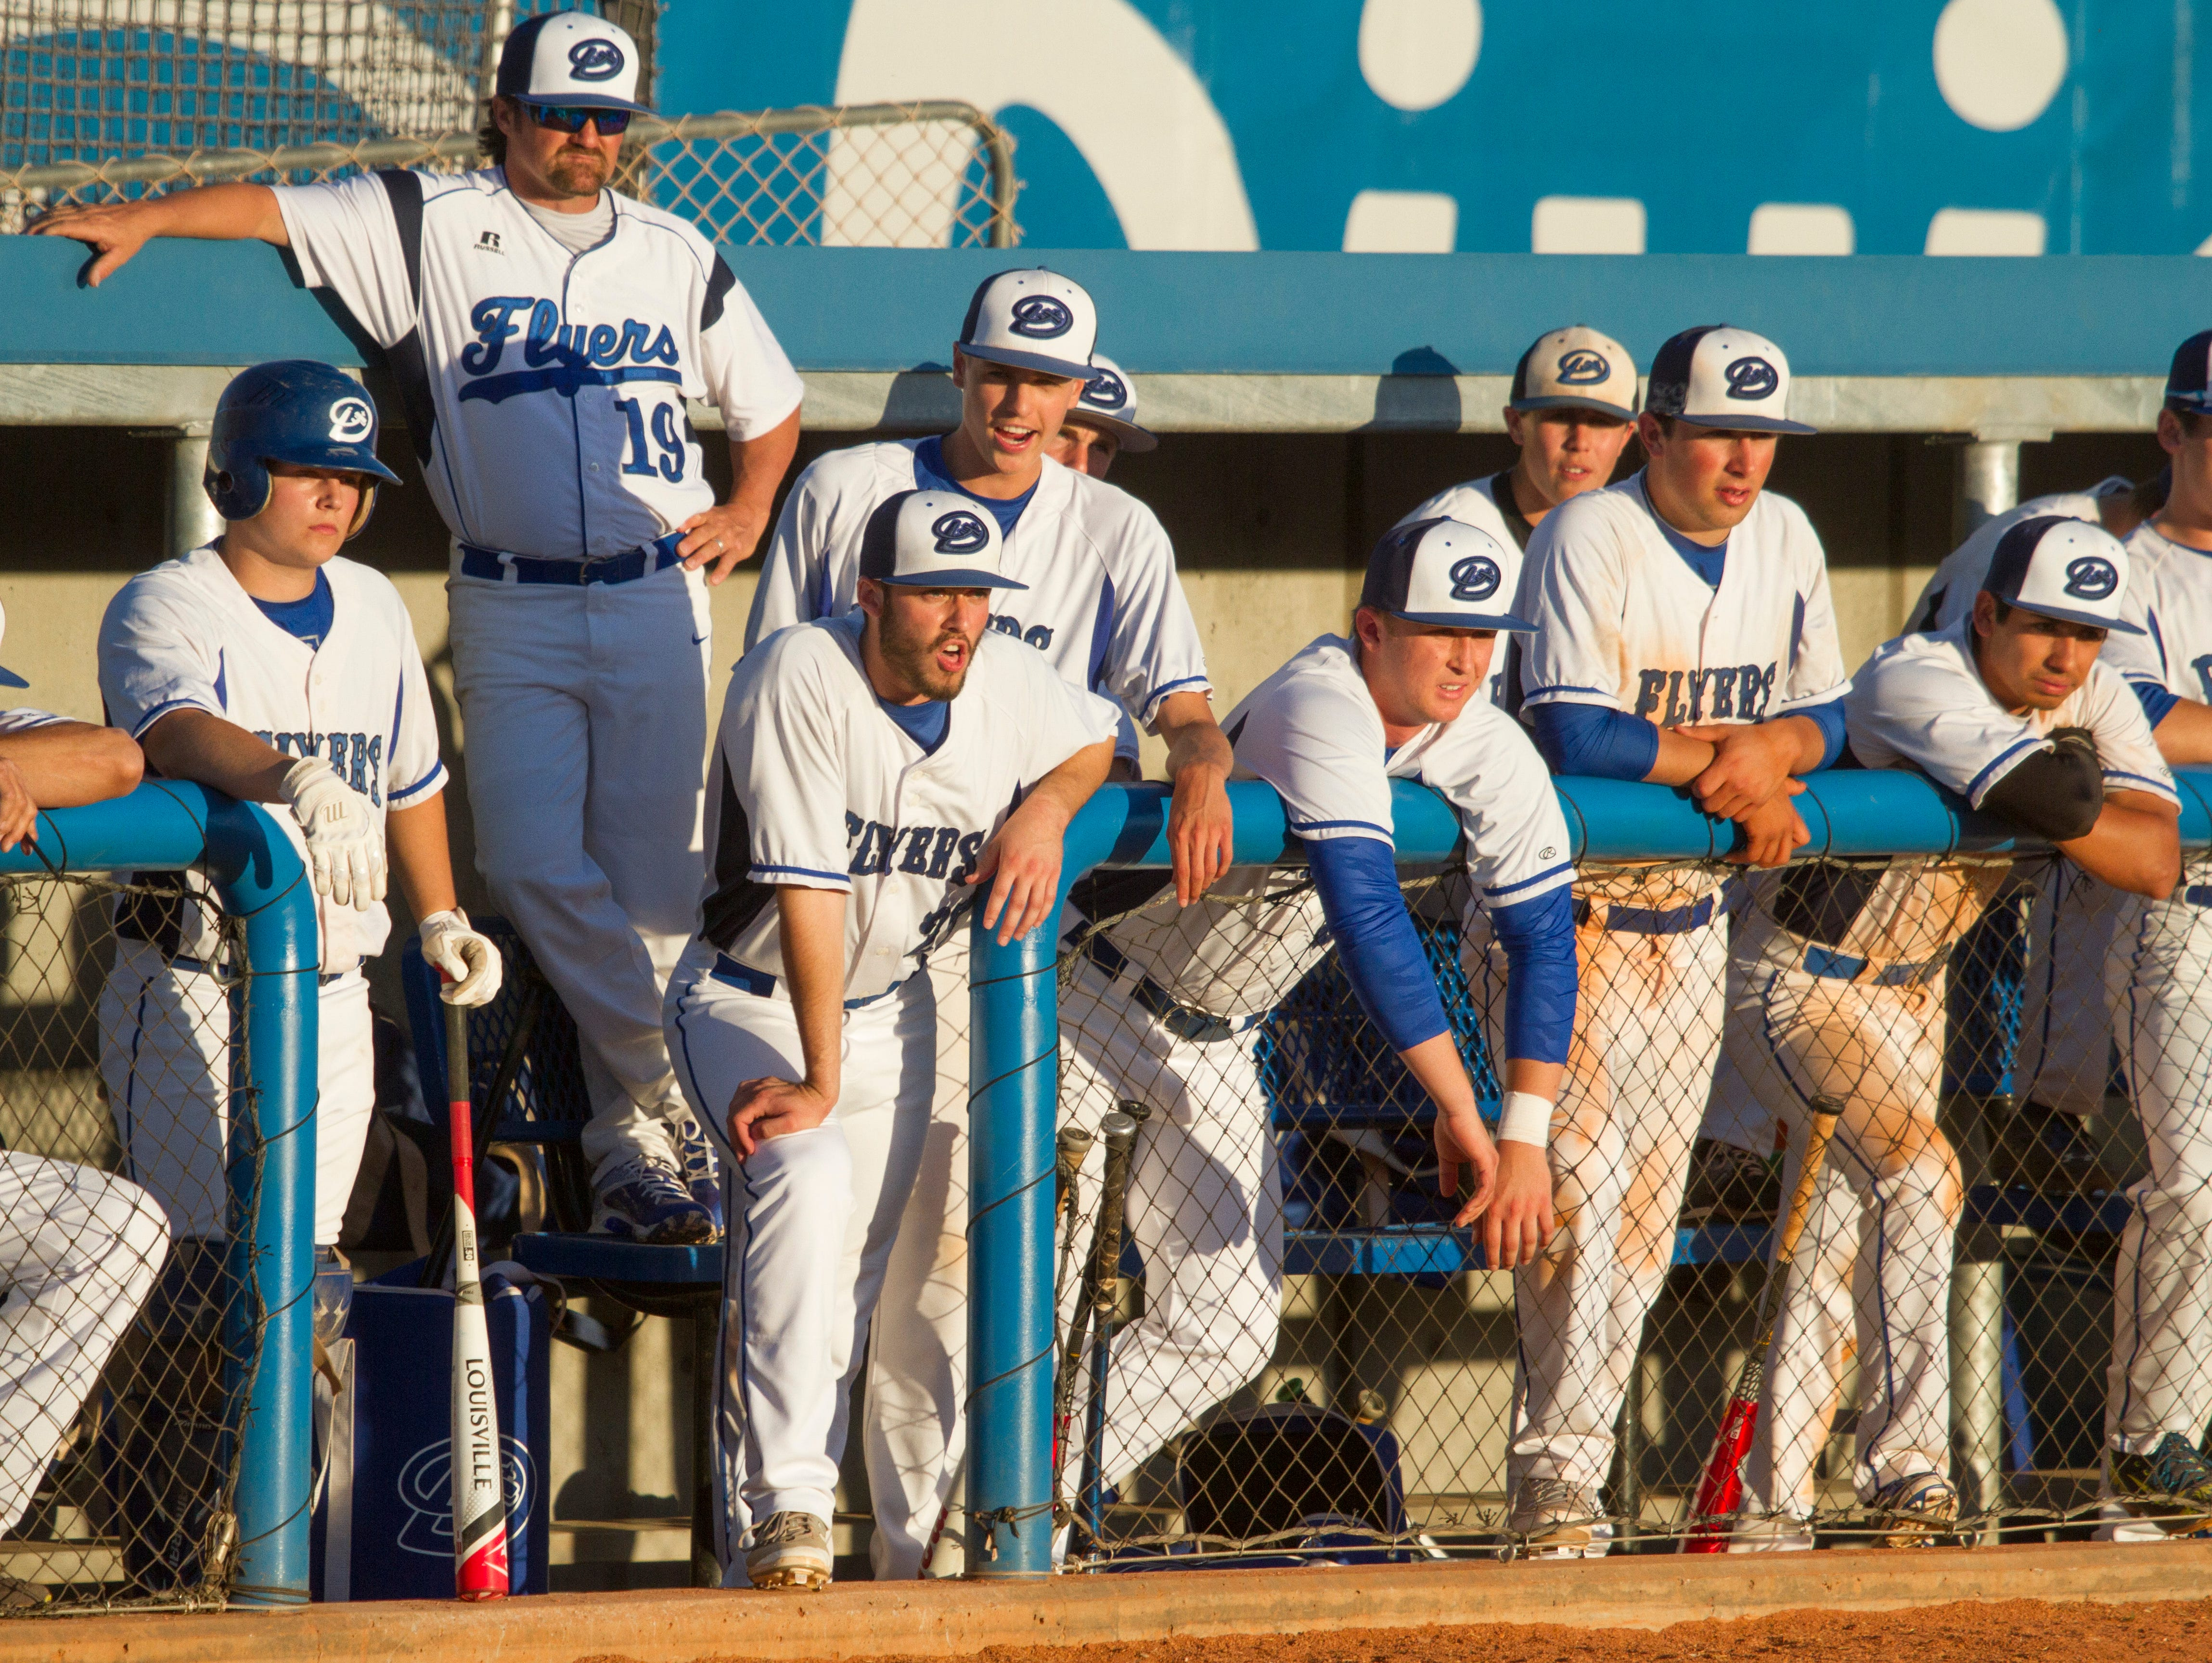 Dixie players and coaches look on during the Flyers come-from-behind victory over the Cedar Redmen Tuesday night. Hobbs Nyberg drove in the game-winning run with a blast to deep left field.